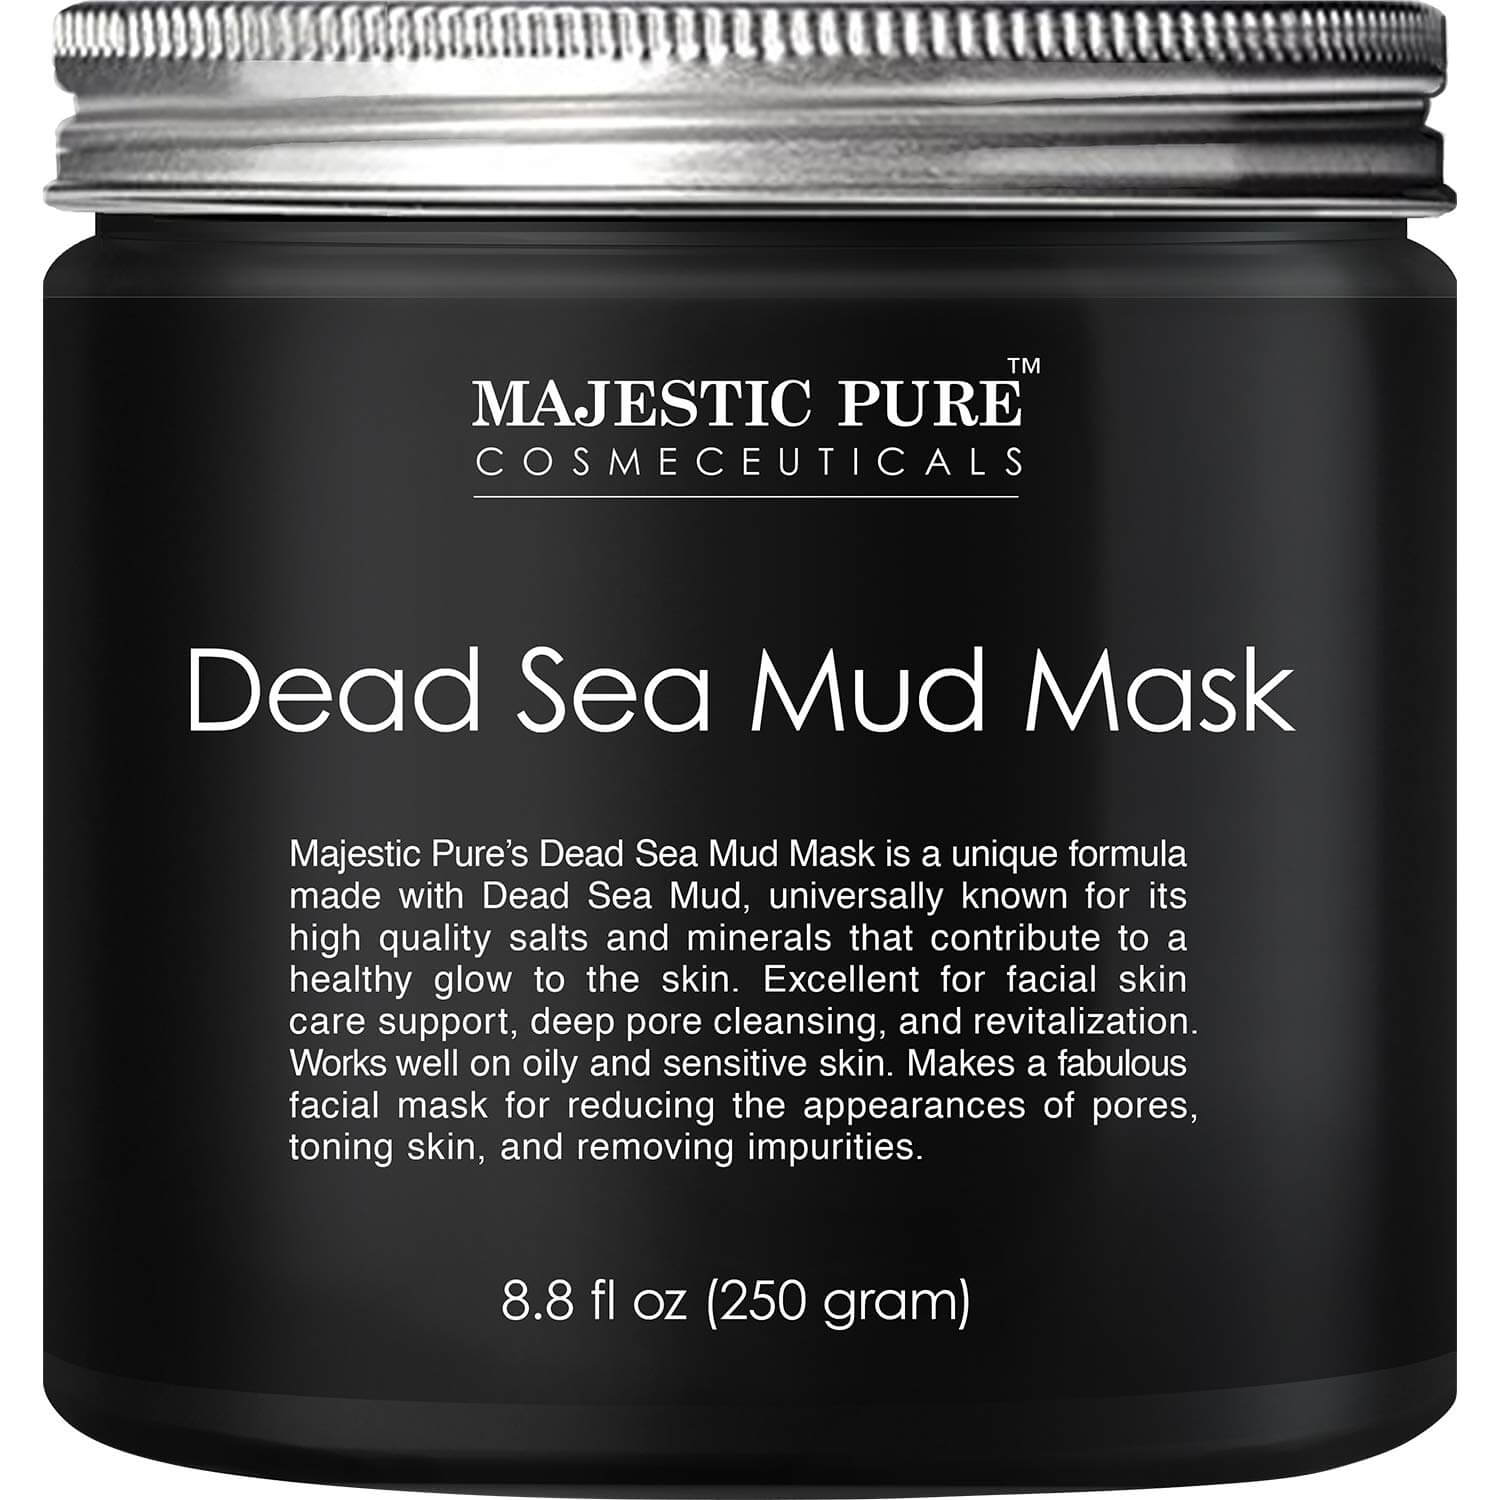 majestic pure dead sea mud mask as a face pack